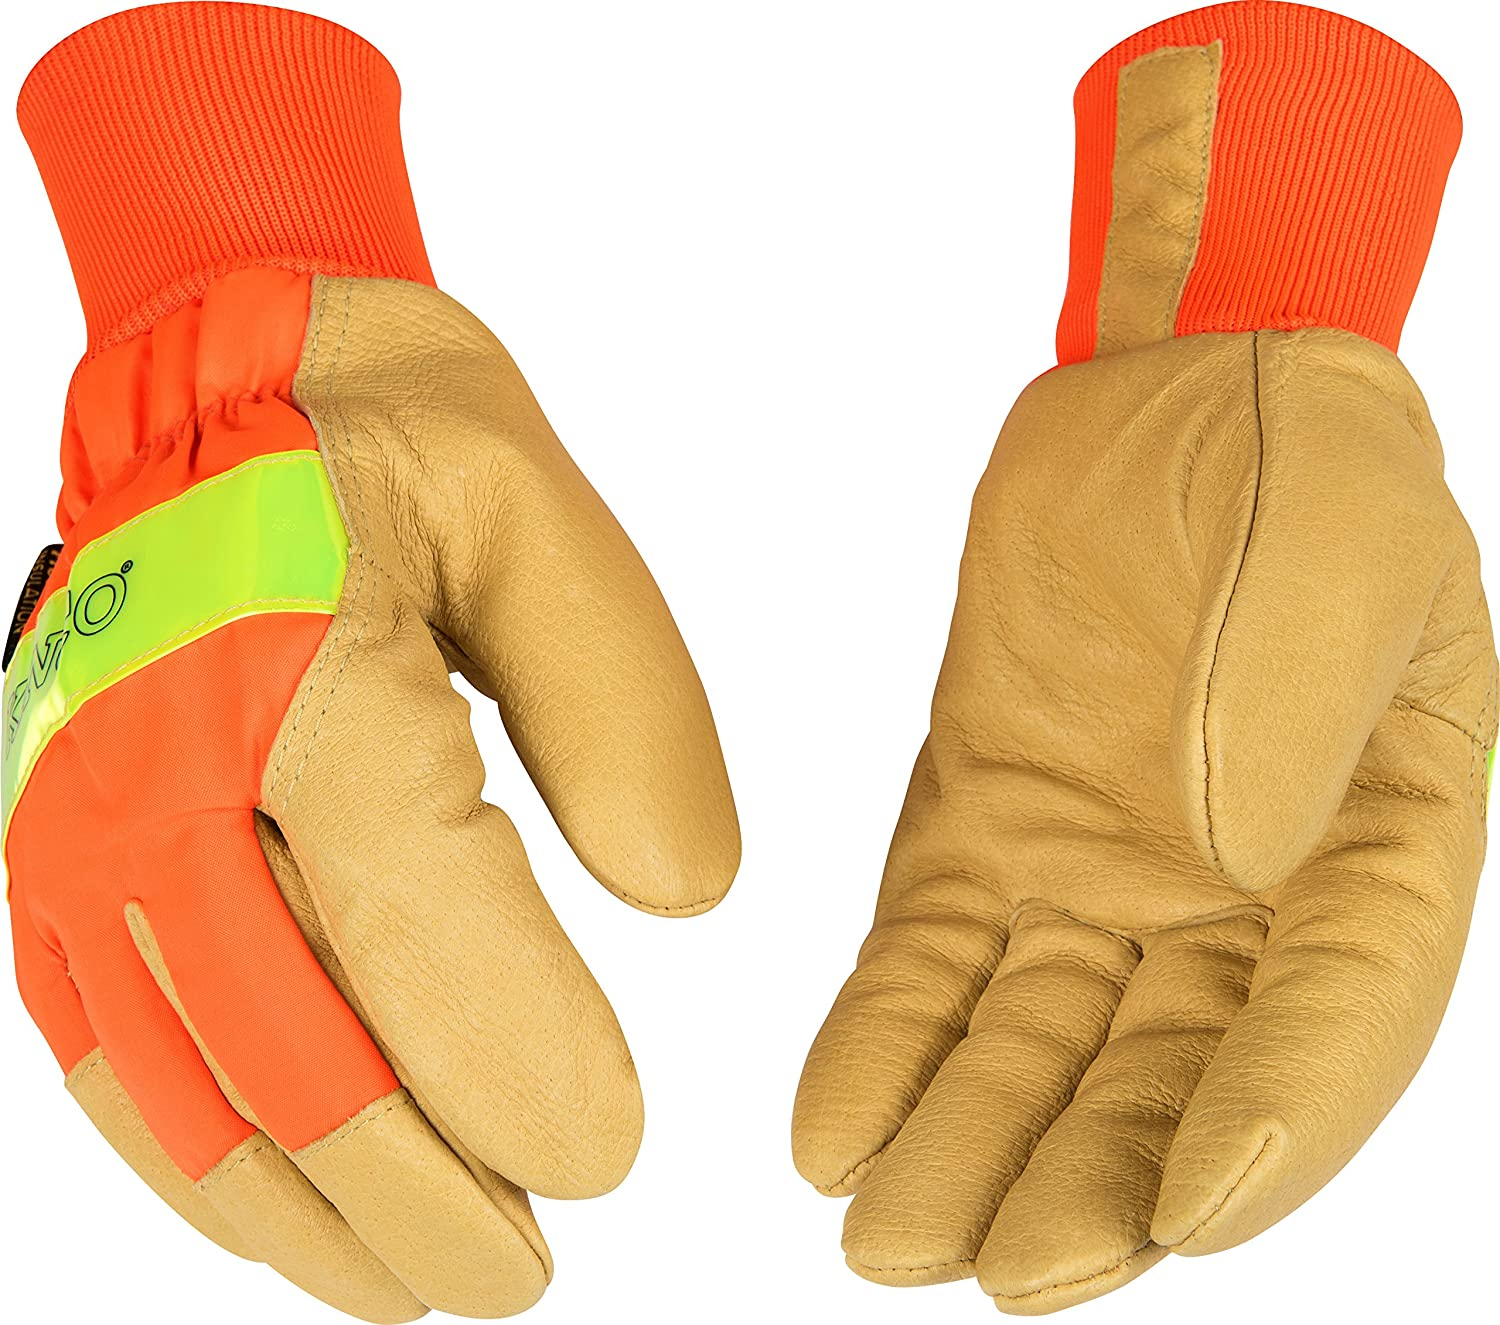 Kinco 1938KW Heatkeep Lined Grain Pigskin Leather High Visibility Glove with Orange Back, Knit Wrist, Work, Large, Palomino (Pack of 6 Pairs) by KINCO INTERNATIONAL  B00AN7V98M